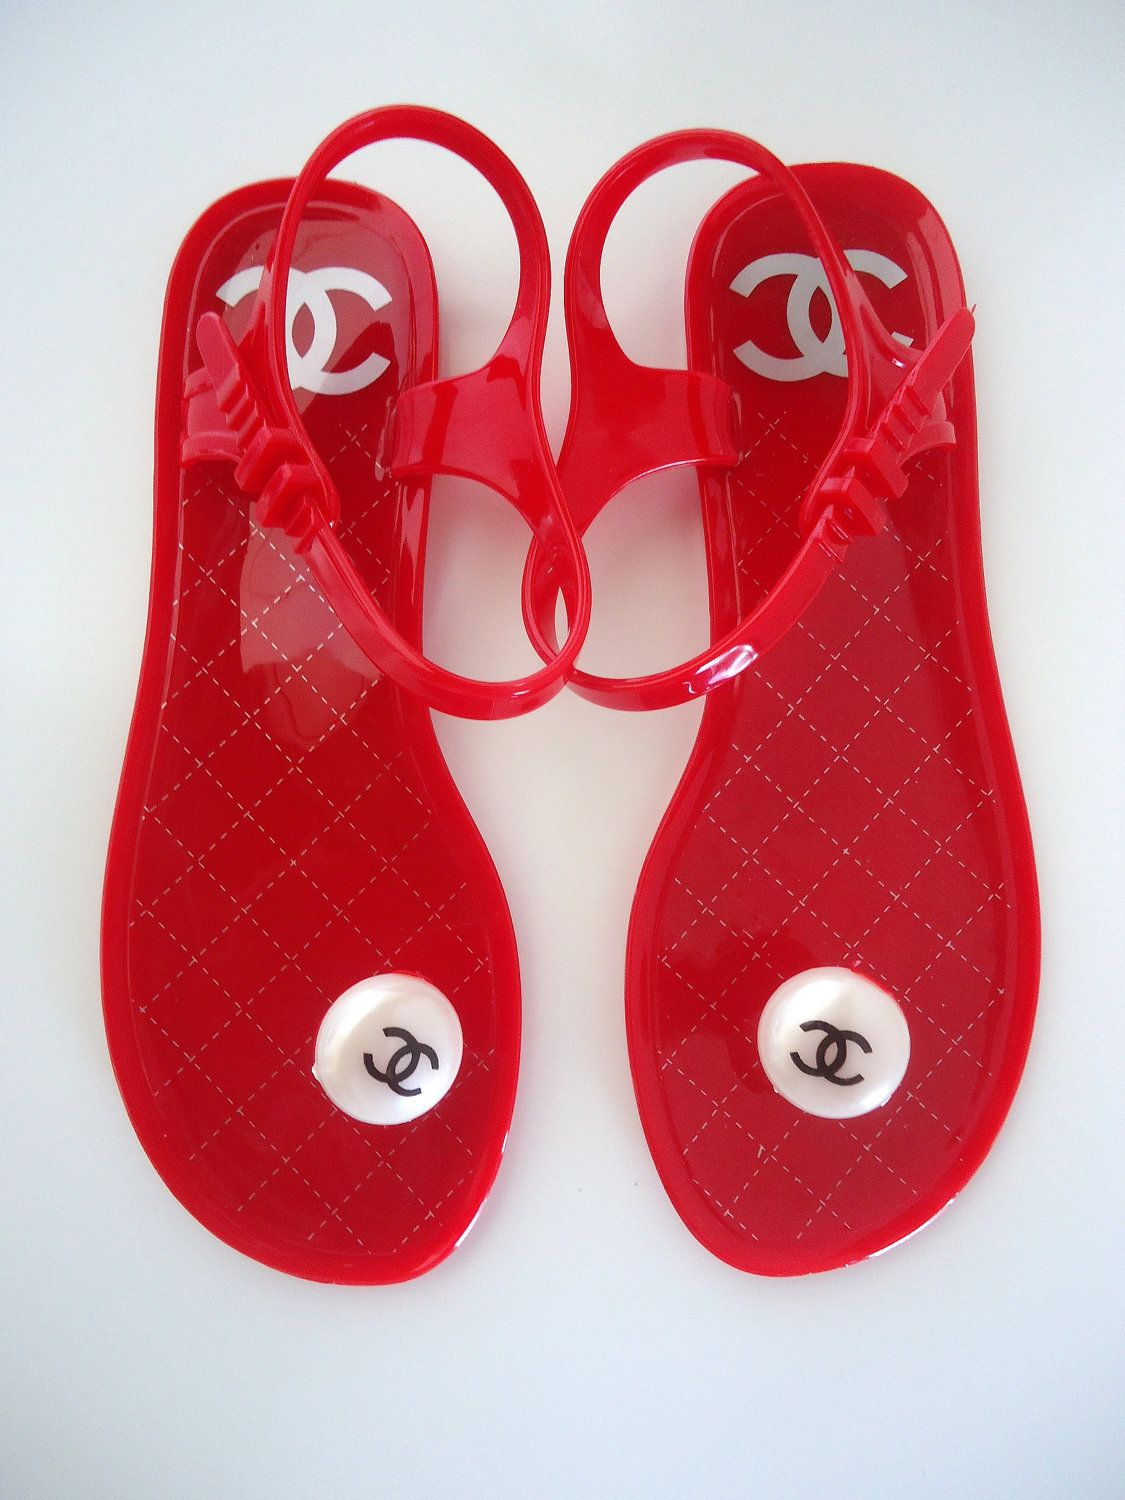 20d3a79ffa59 Trendy Red Chanel Inspired Jelly Sandals